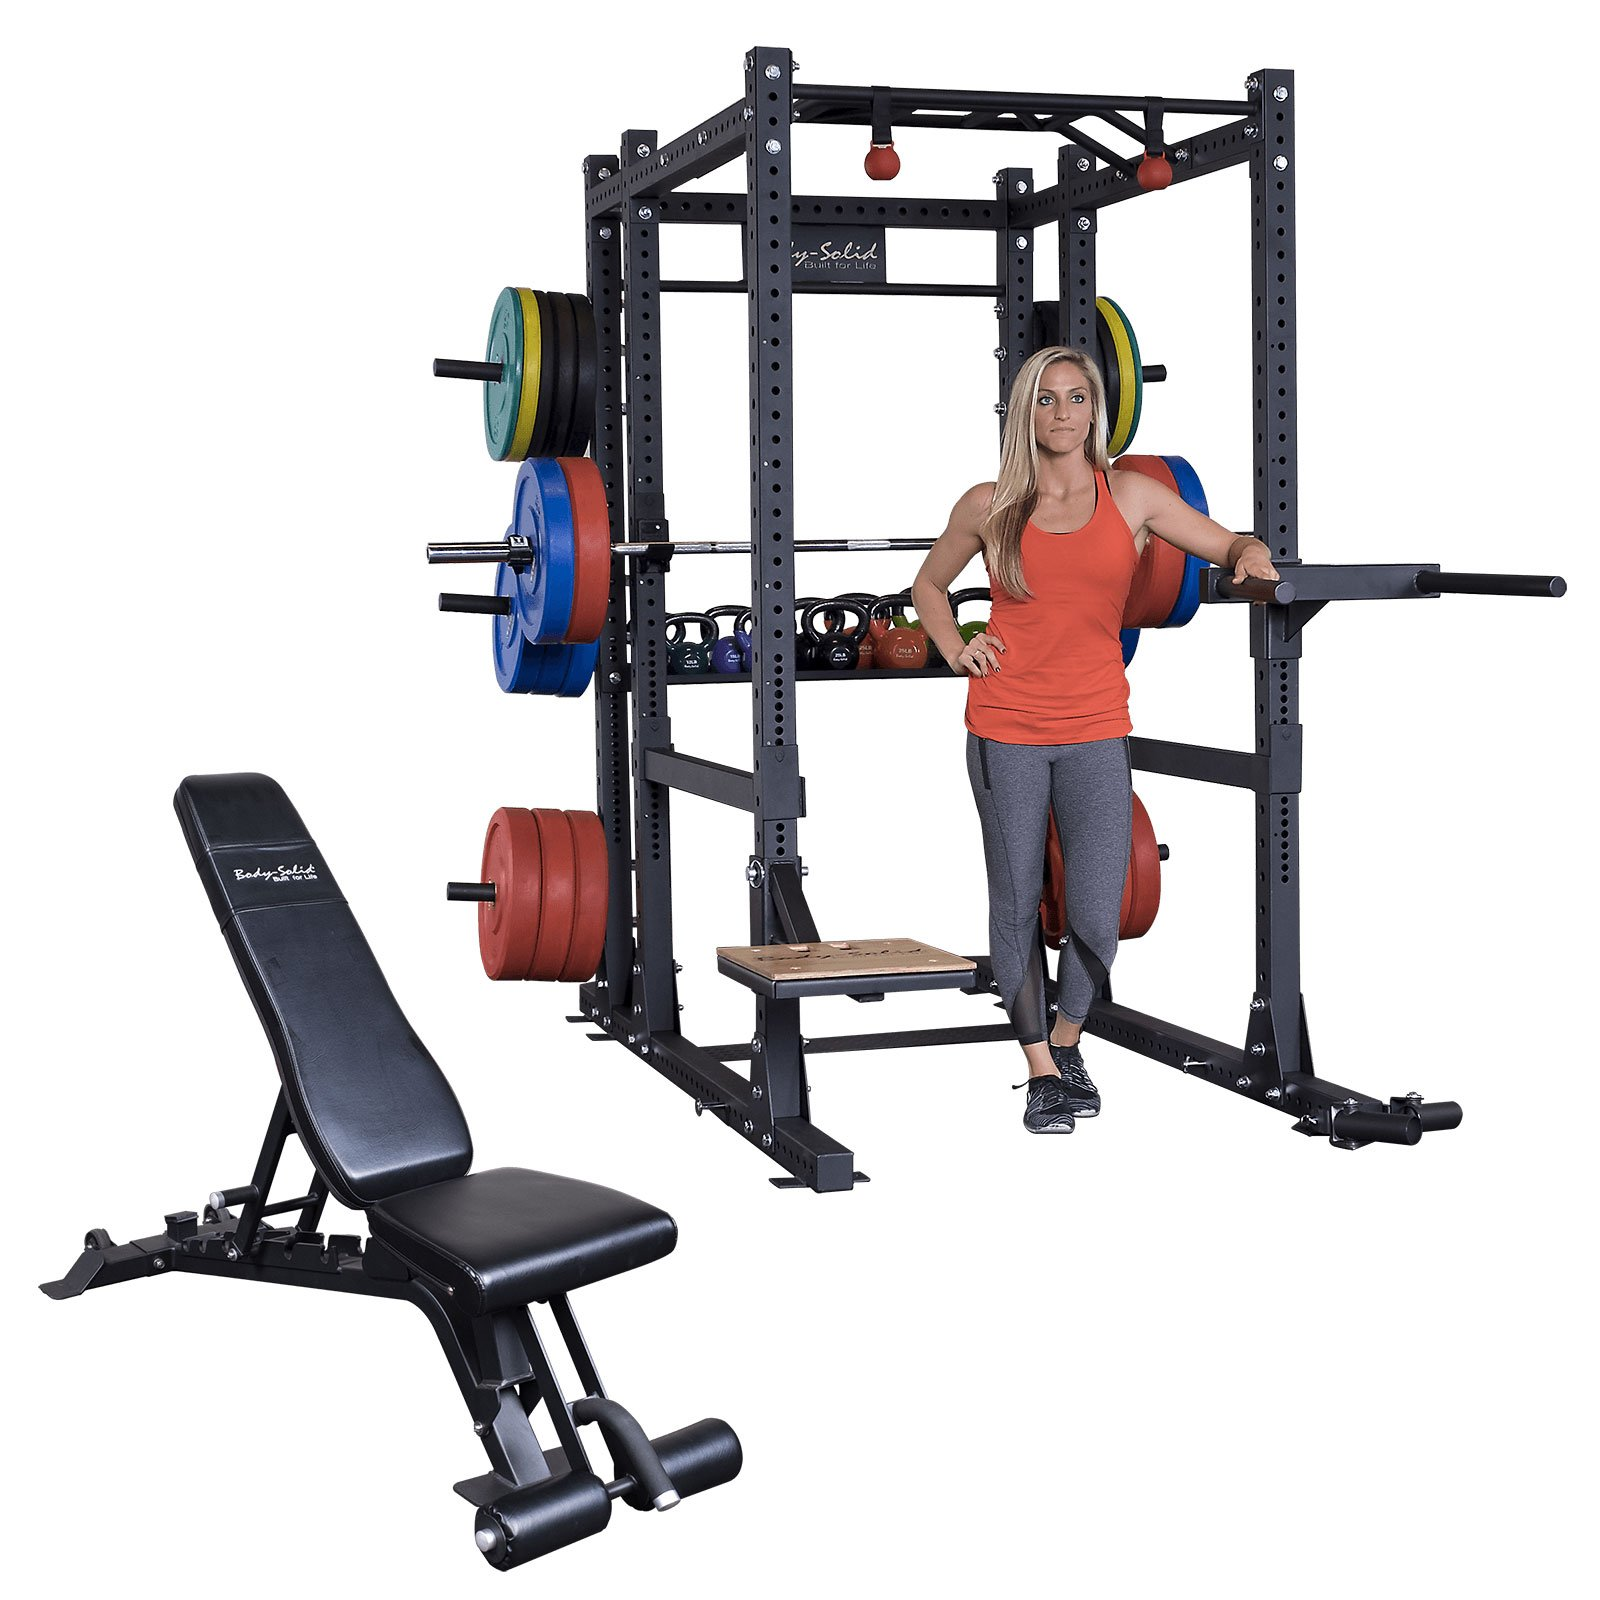 Body-Solid Power Rack SPR1000 and the rear Rack Extension with SFID425 Package - SPR1000BackP5